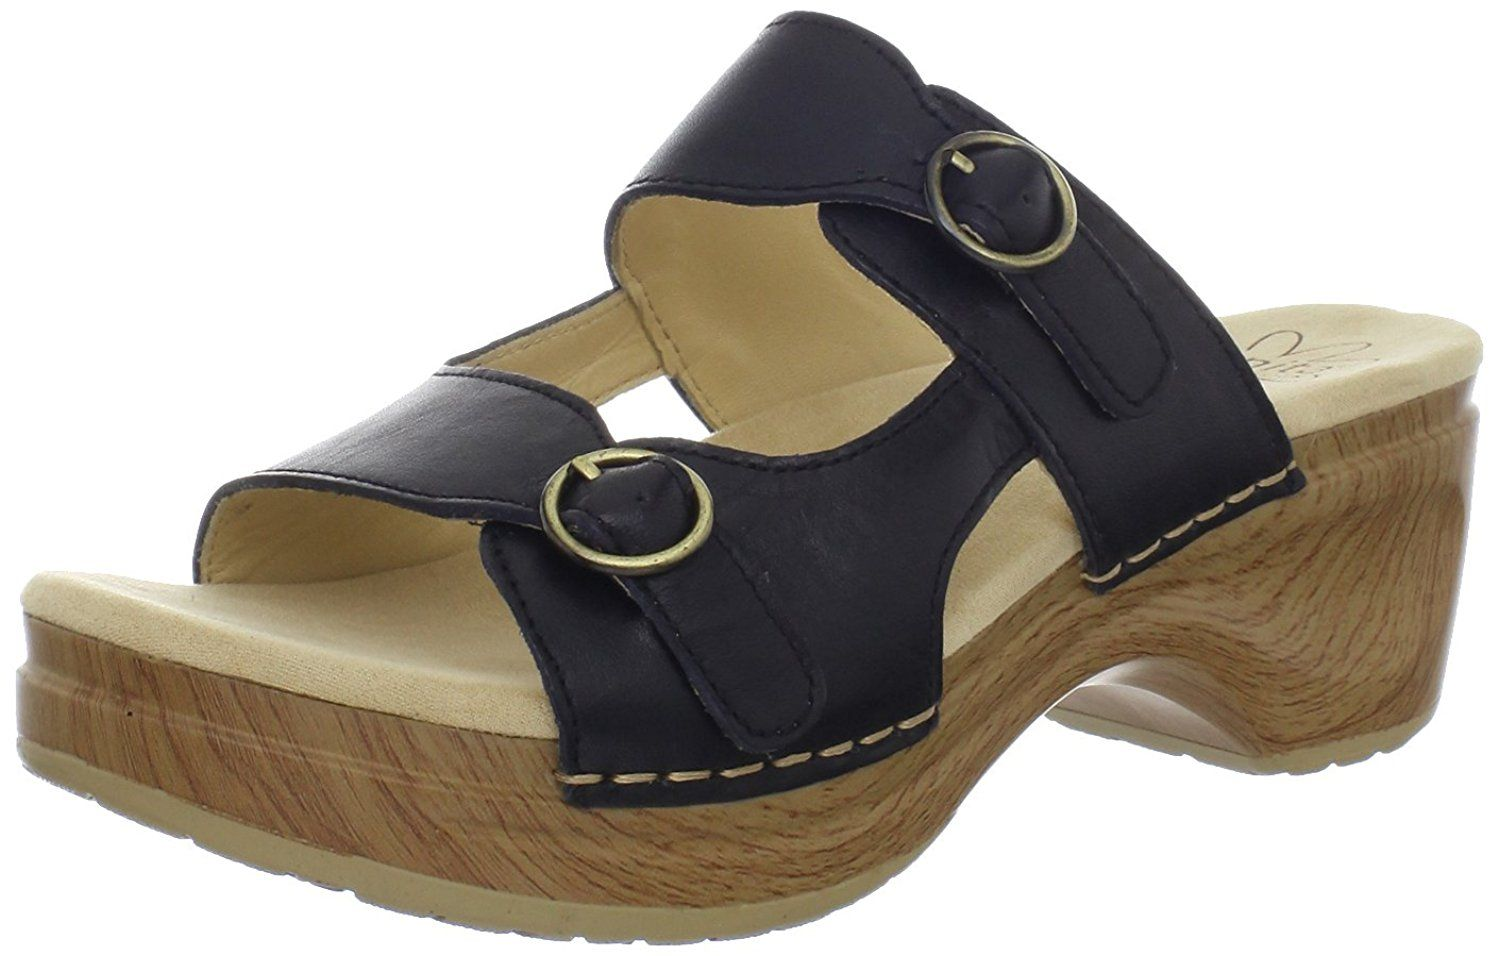 Sanita Women's Deanna Slide Sandal => New and awesome product awaits you, Read it now  : Slides sandals